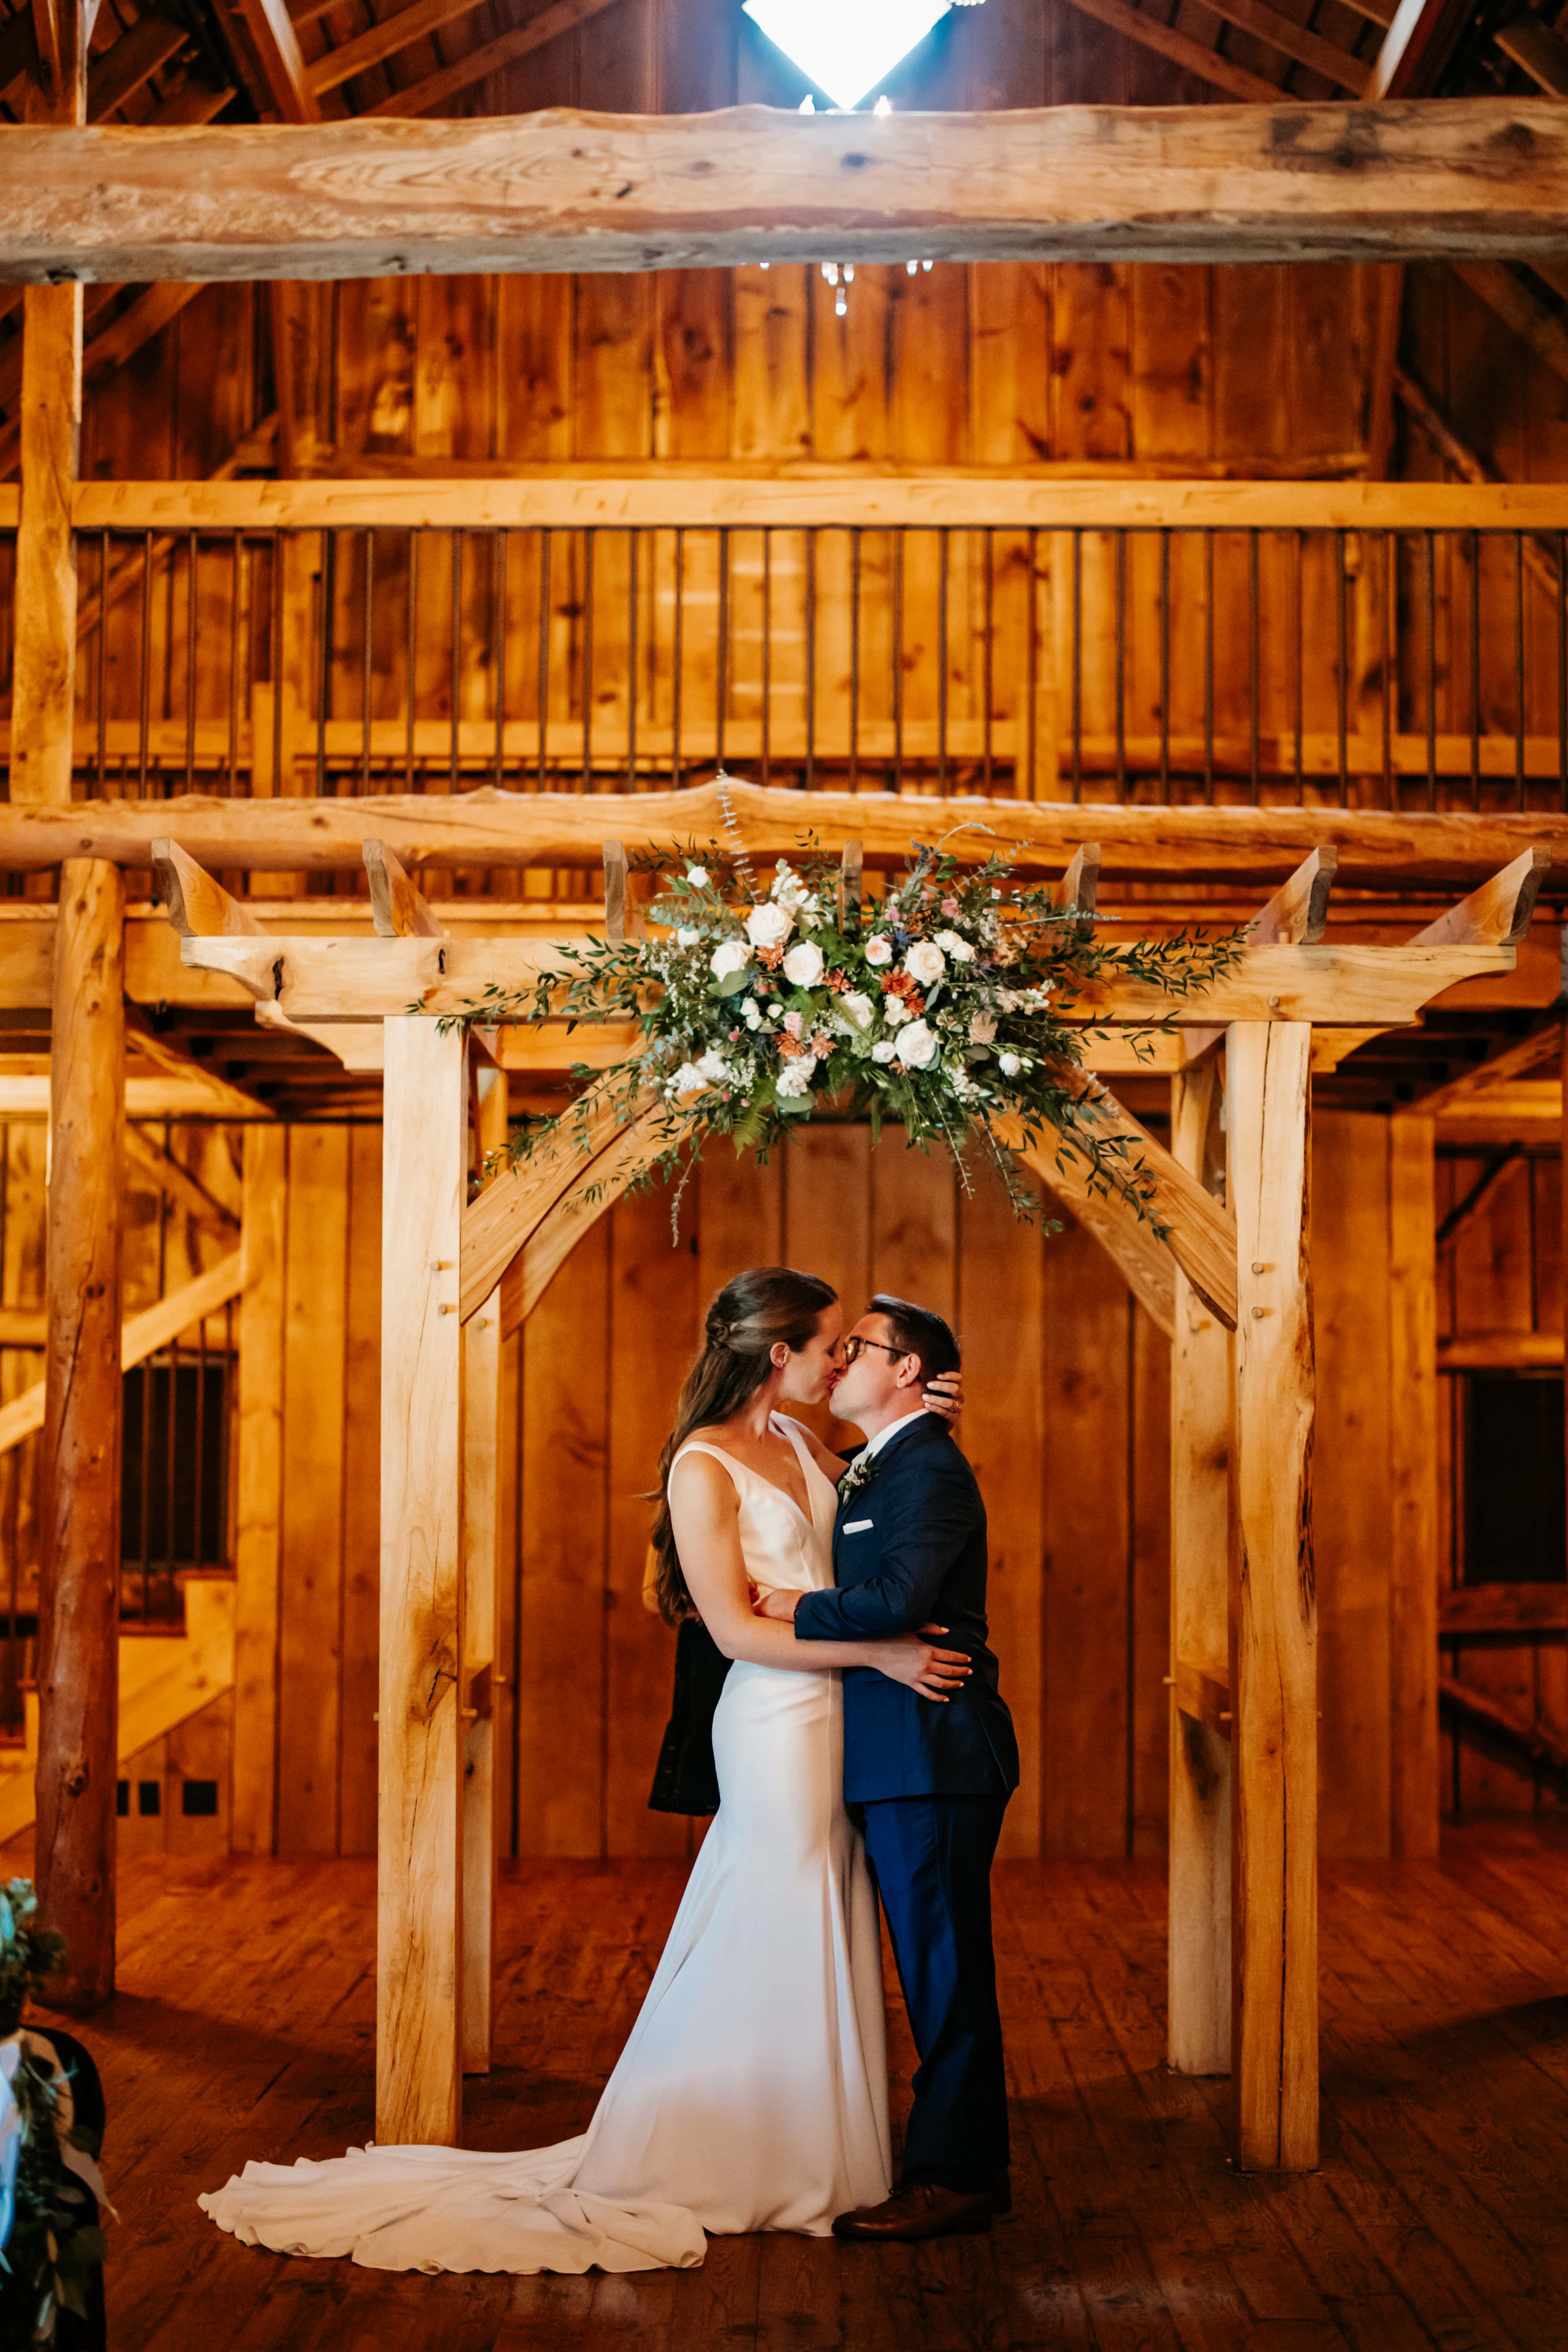 Bride and Groom have their first kiss at their Rolling Ridge wedding